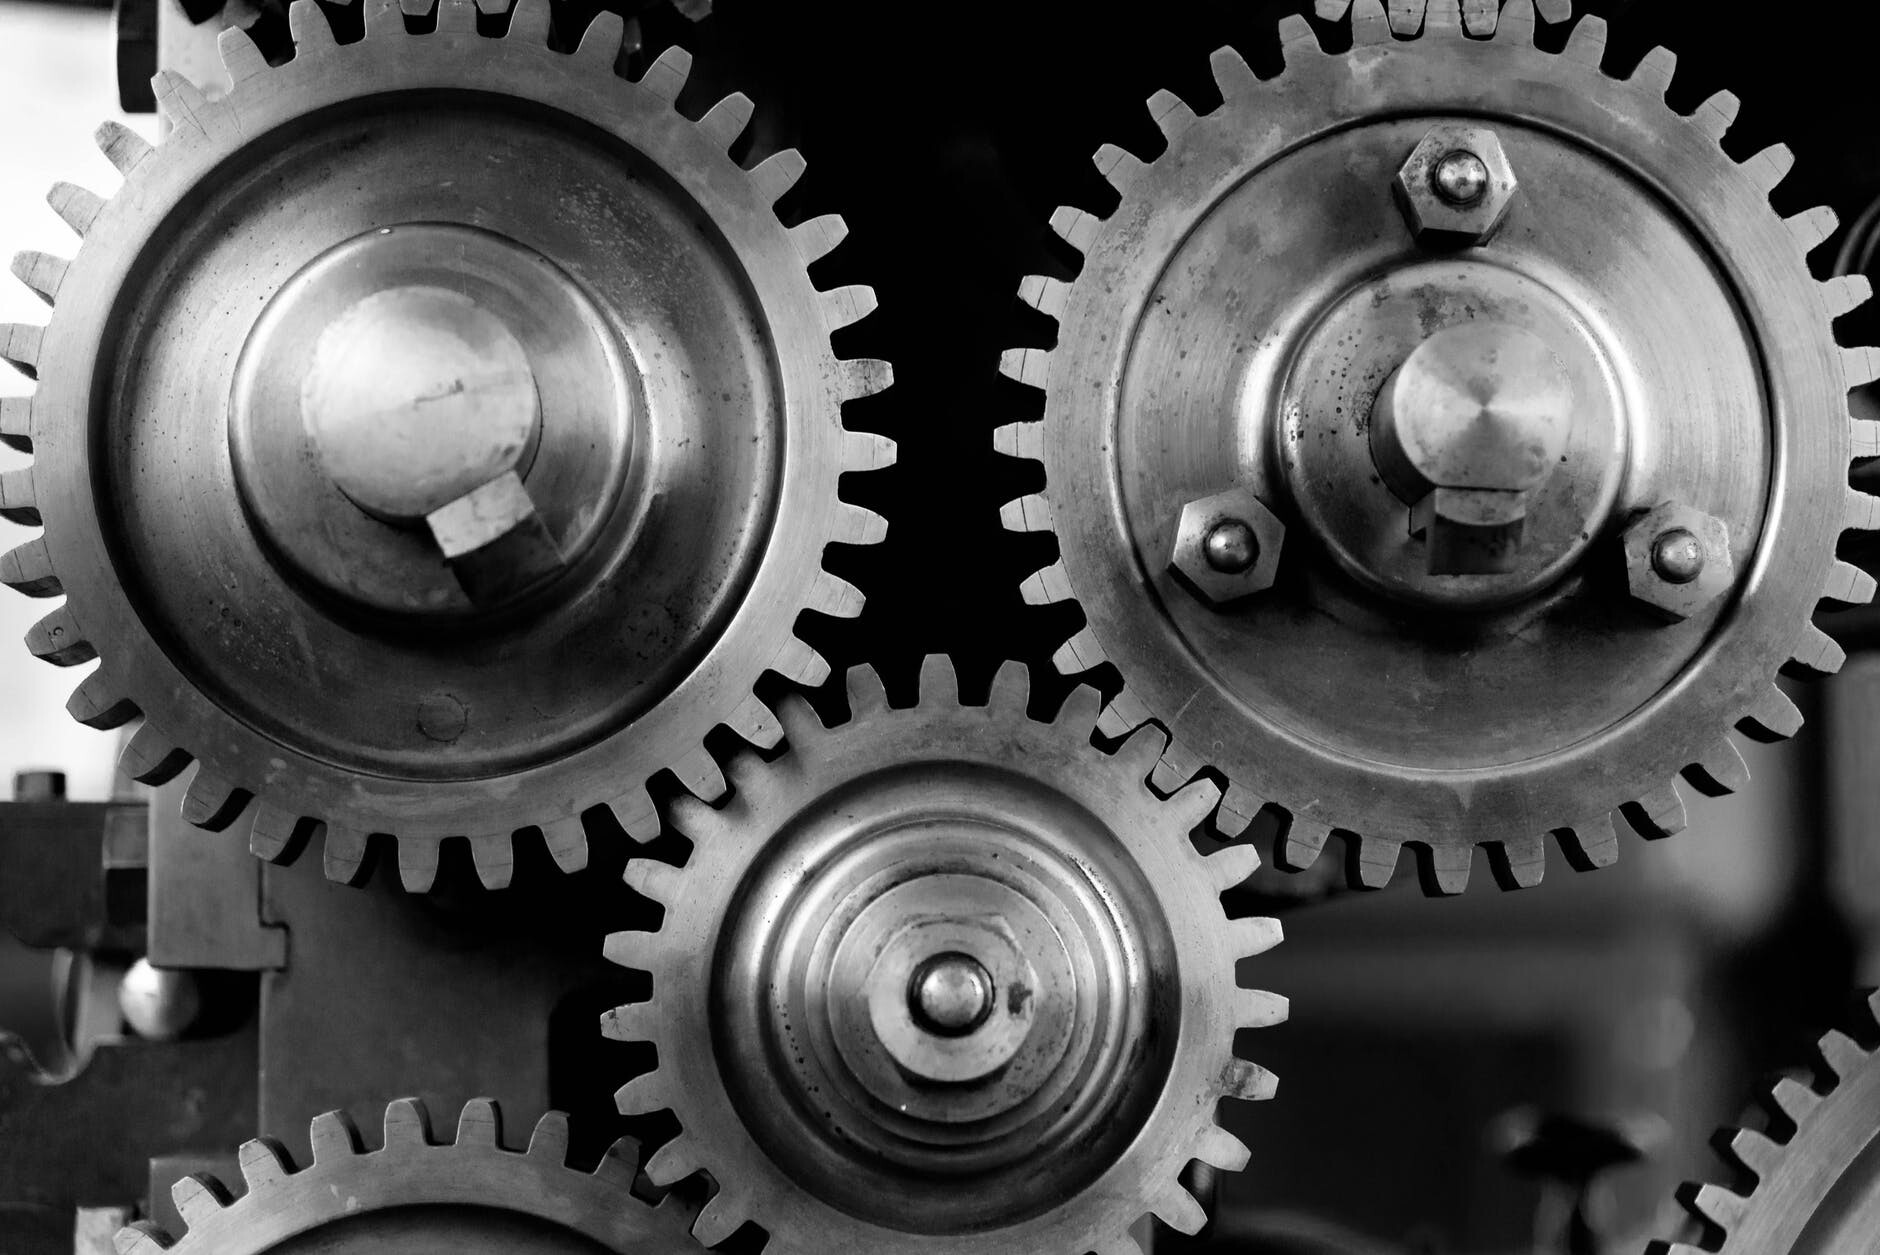 Gears Interconnected